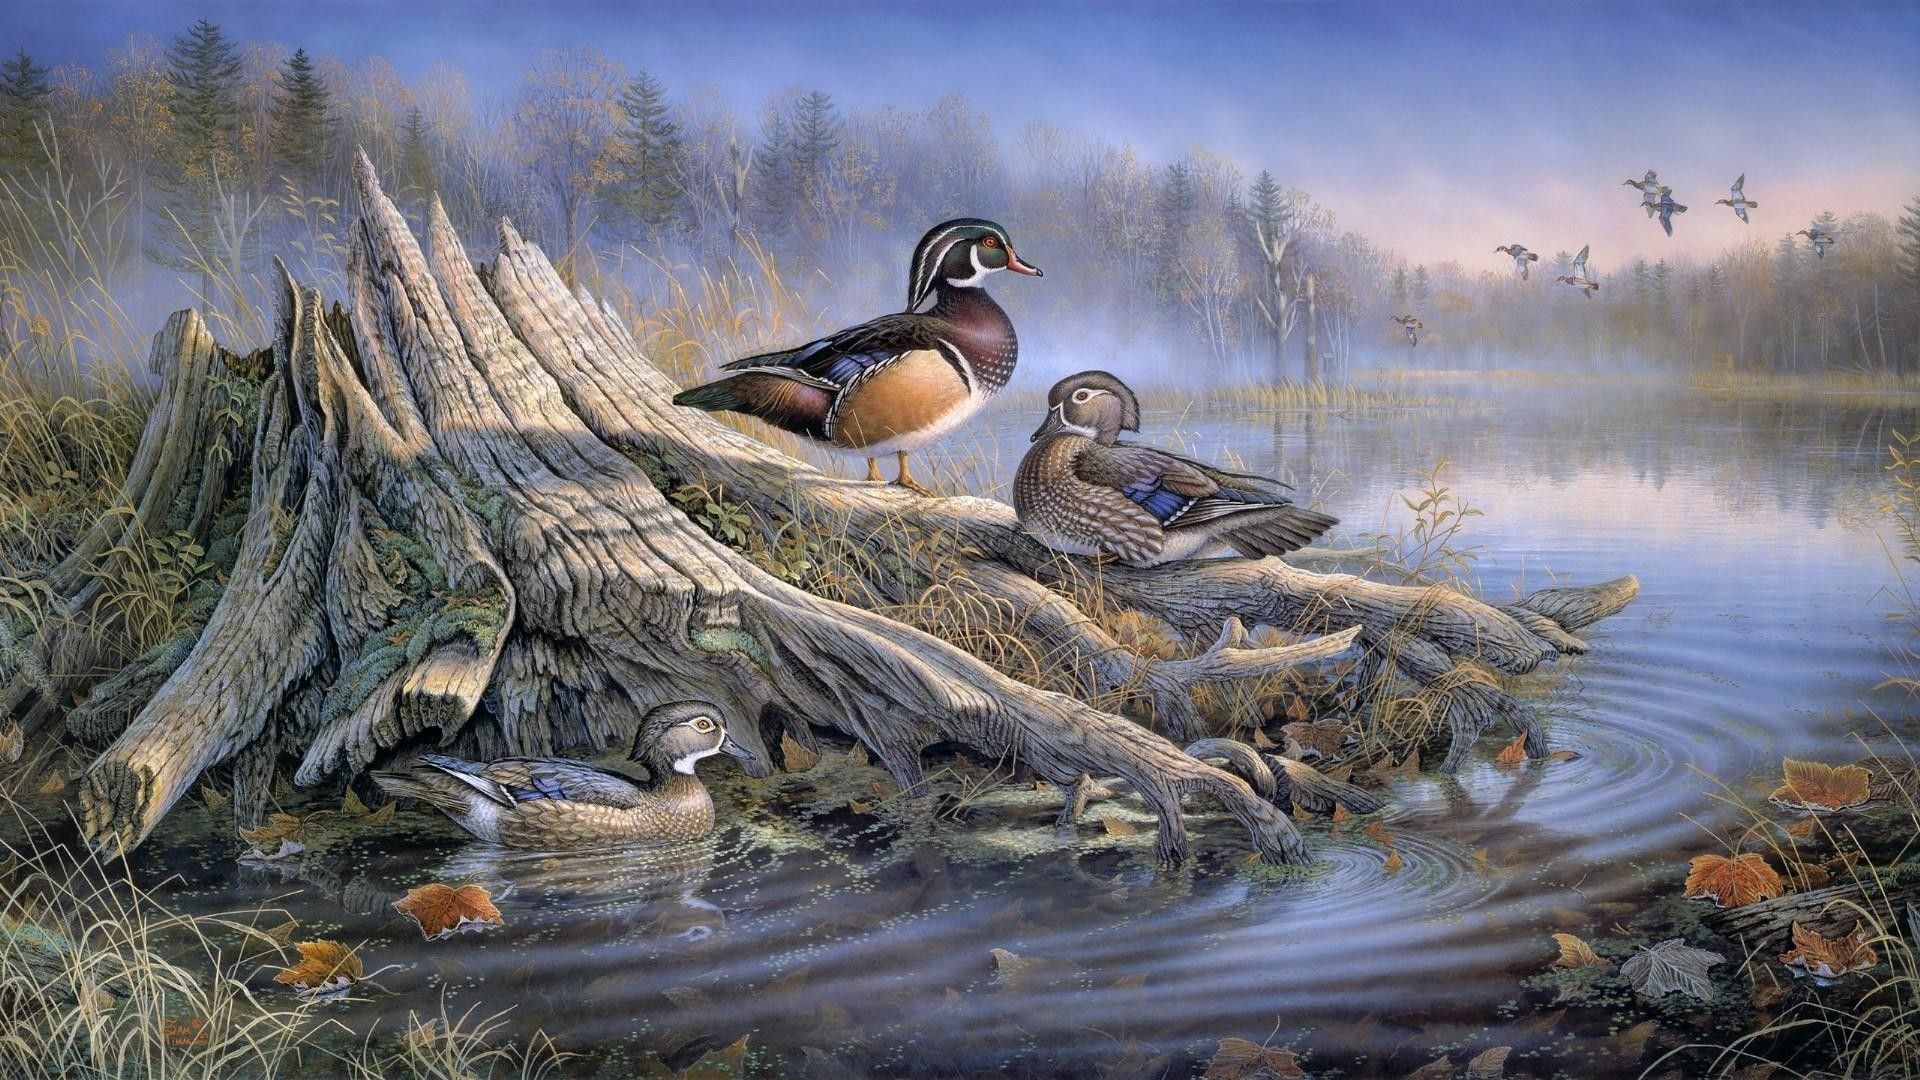 Res: 1920x1080, Ducks In The Autumn Lake - Painting Art Wallpaper | Wallpaper Studio 10 |  Tens of thousands HD and UltraHD wallpapers for Android, Windows and Xbox